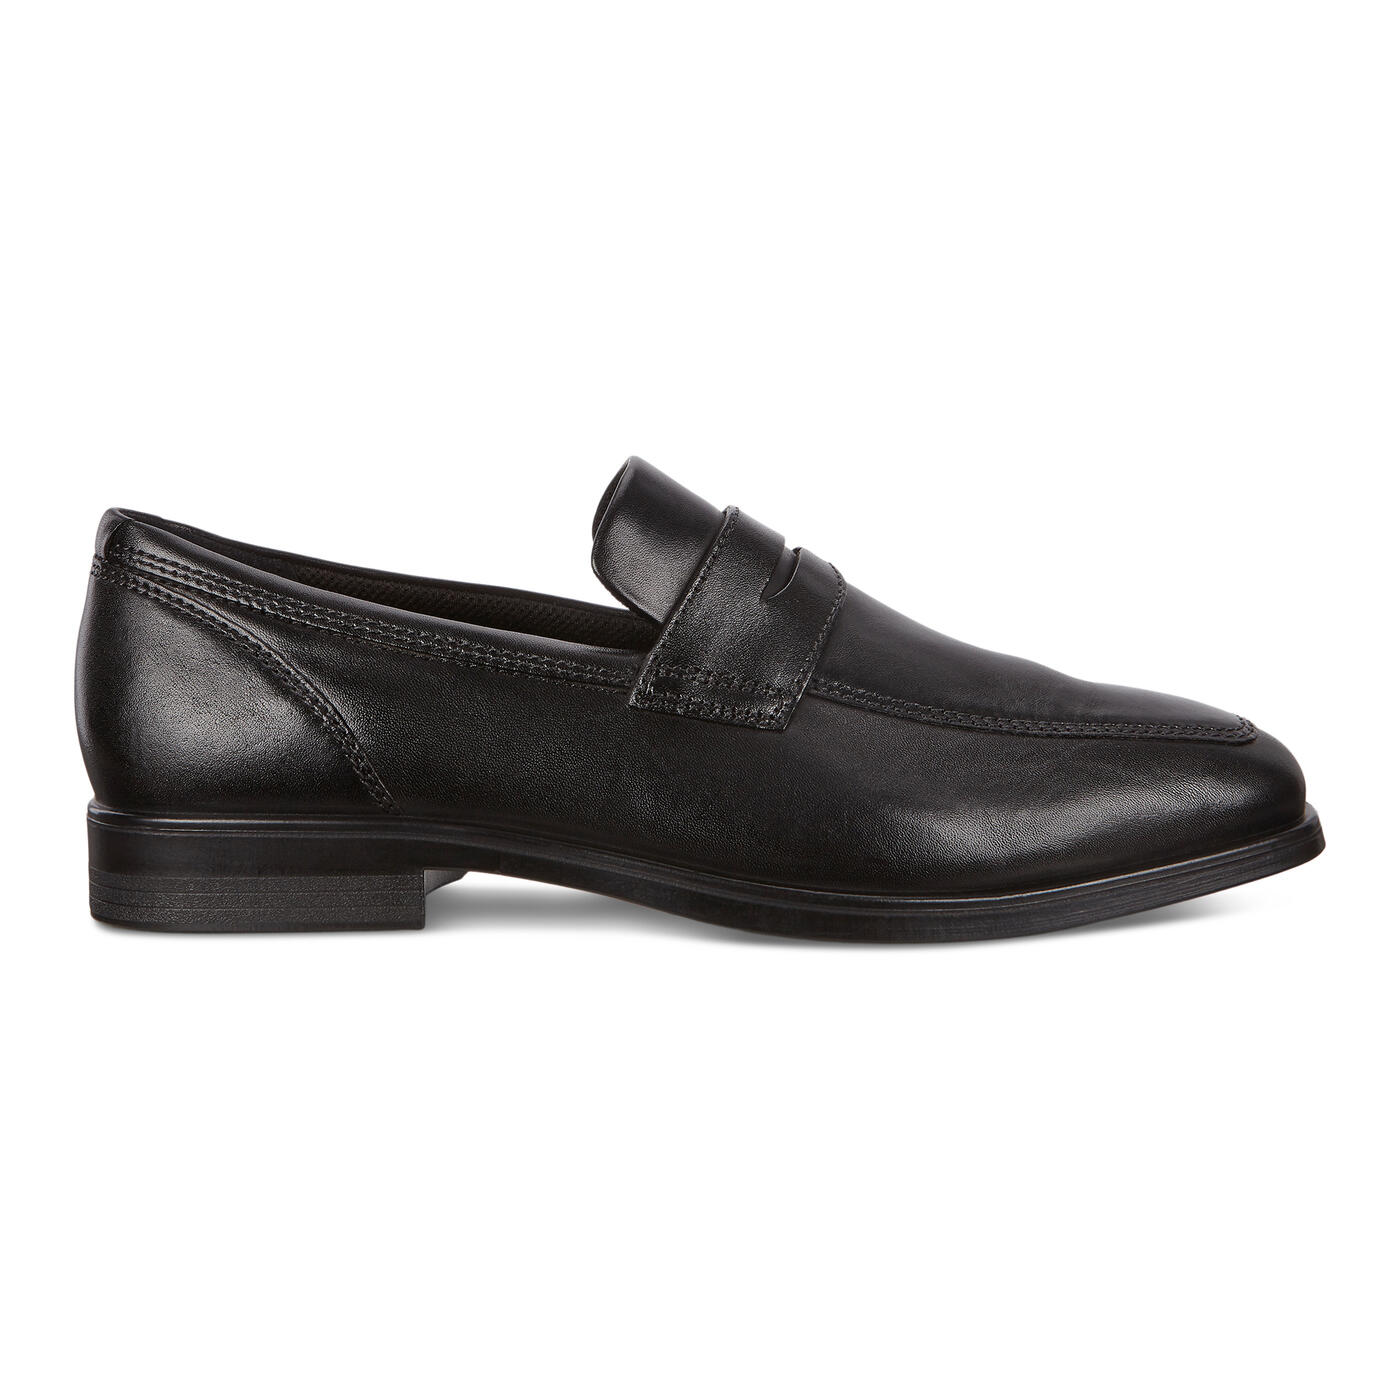 Ecco Queenstown Men's Penny Loafer